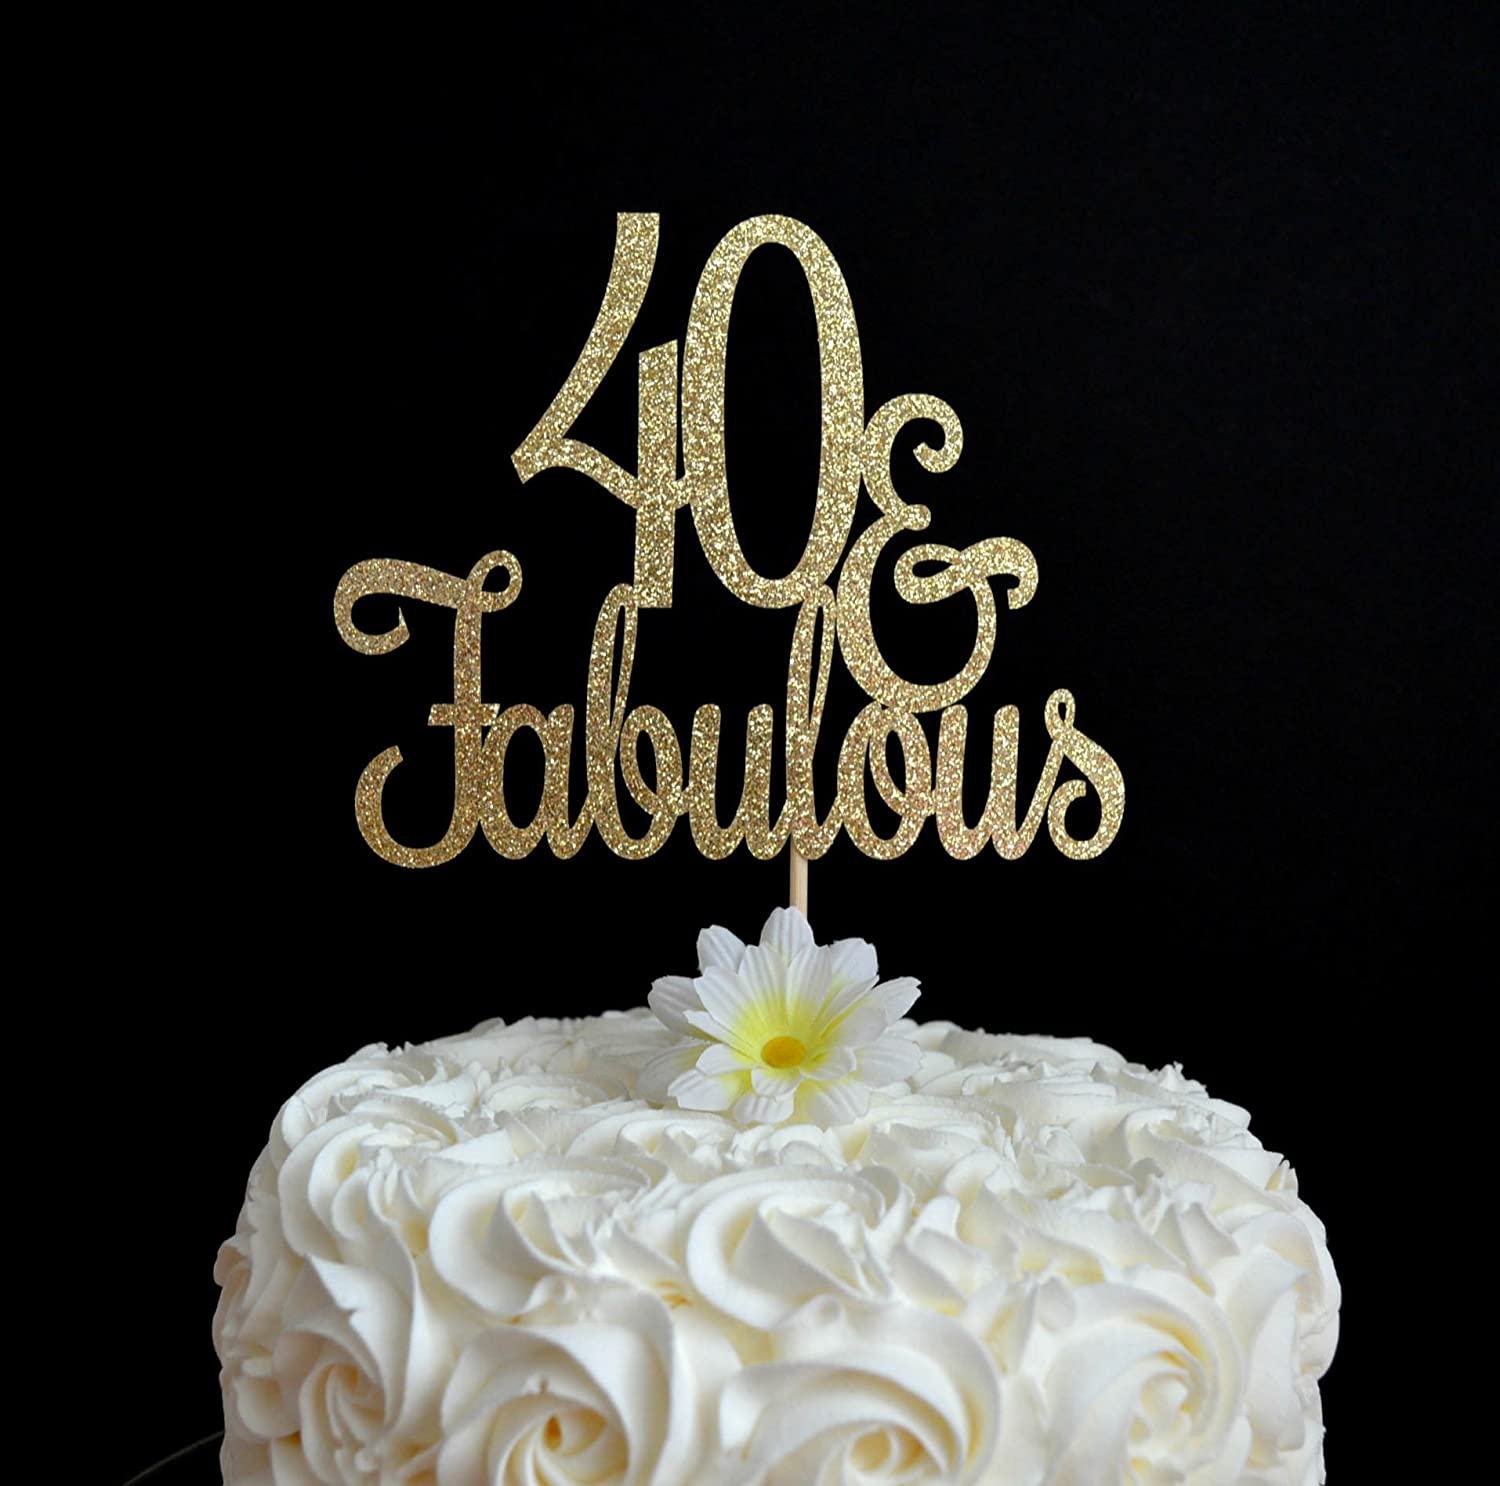 Wondrous Amazon Com 40 Fabulous Cake Topper Glitter Birthday Cake Topper Funny Birthday Cards Online Overcheapnameinfo